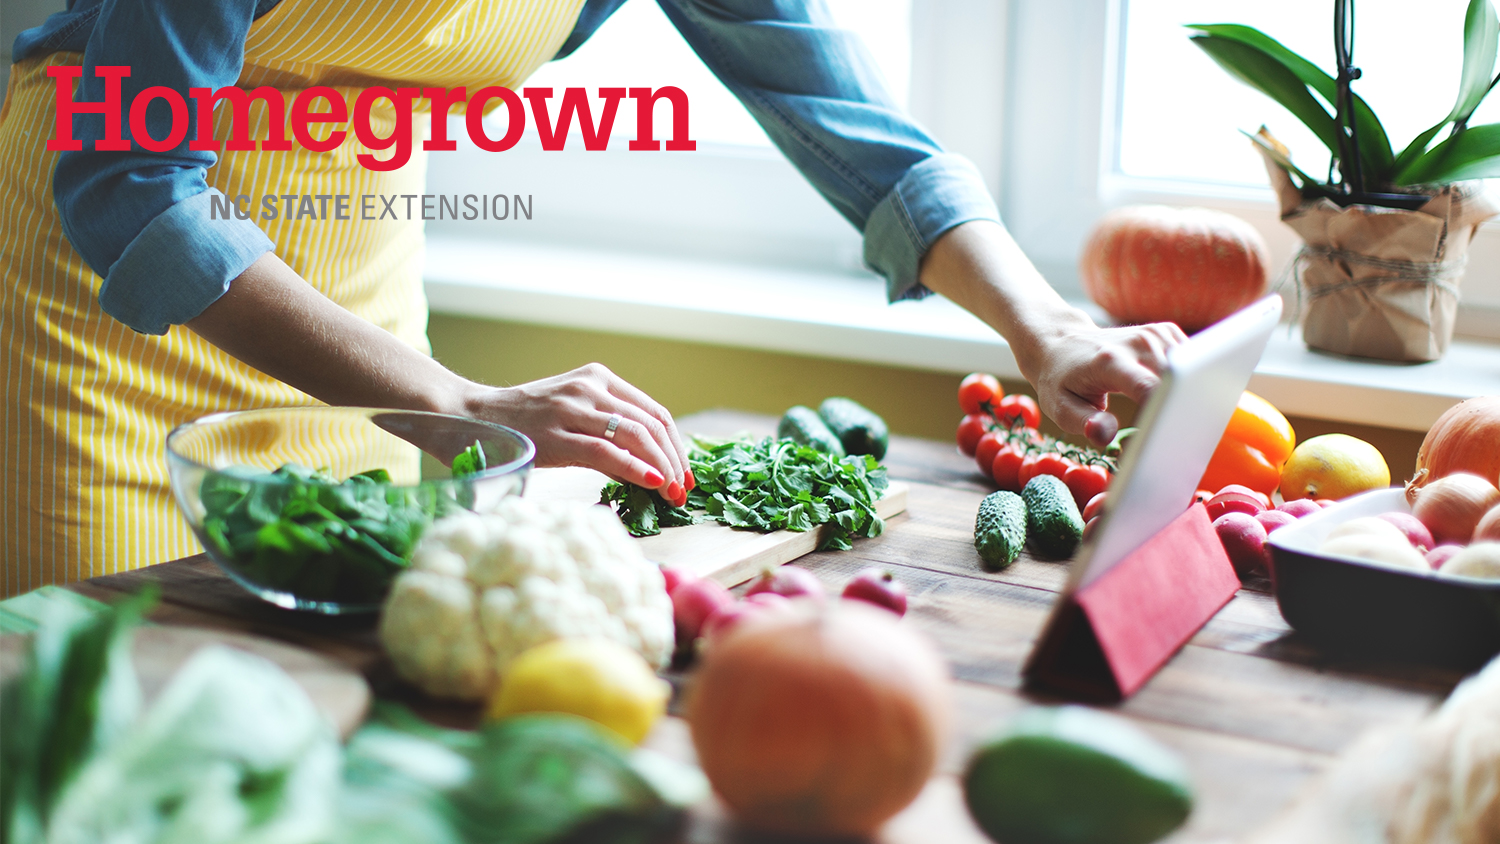 Person leaning over counter looking at tablet with lots of vegetables around.